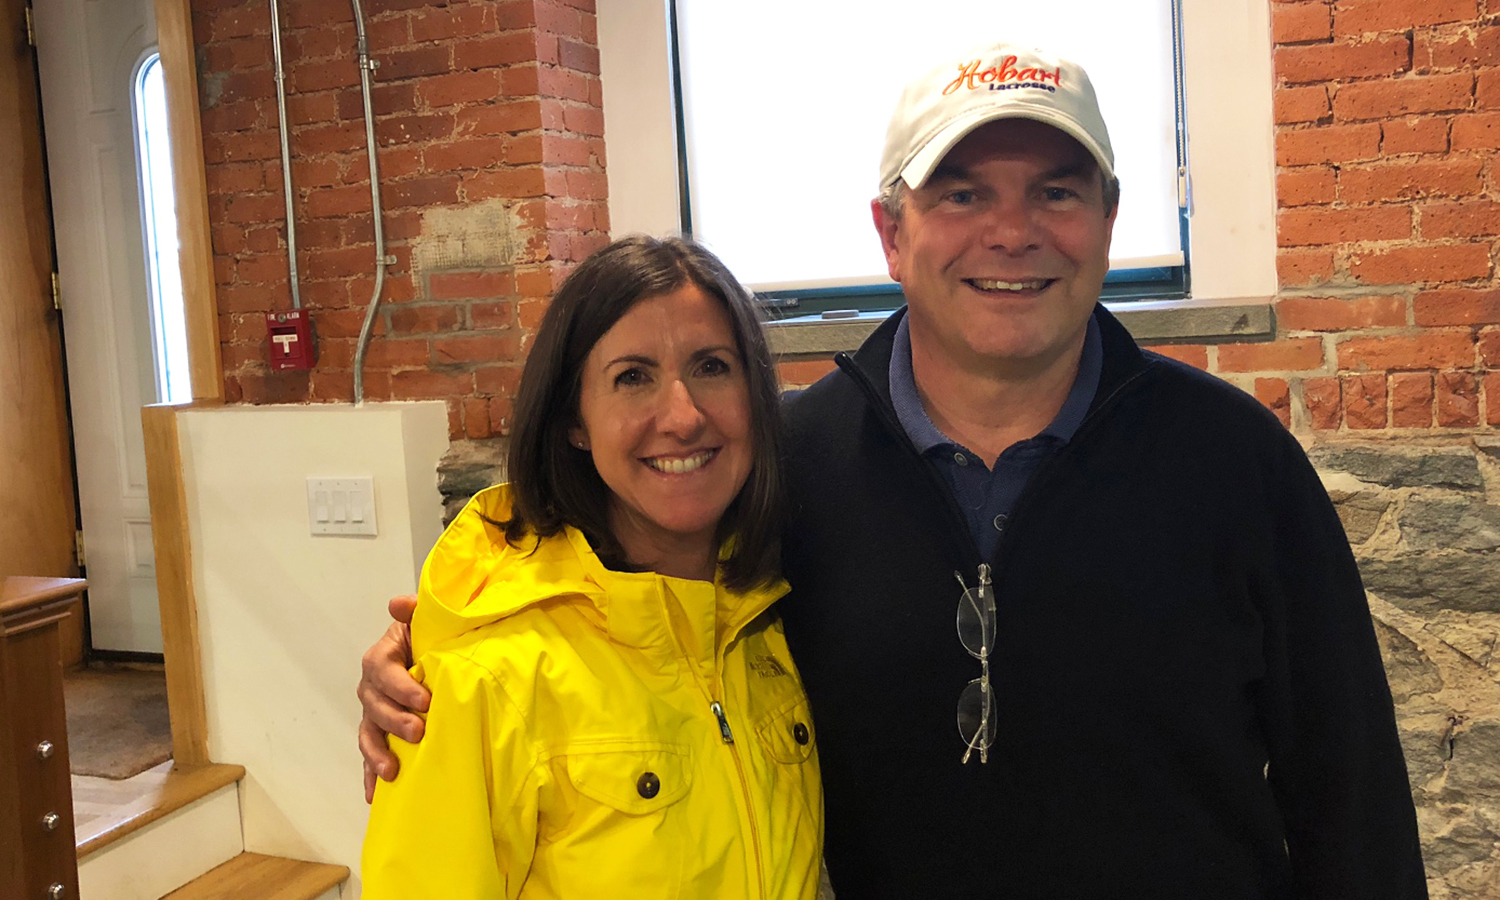 Alumni House representative Mary Kerwick takes a photo with Bruce G. Eckerson '83, P'11 during a visit to Boston, MA.